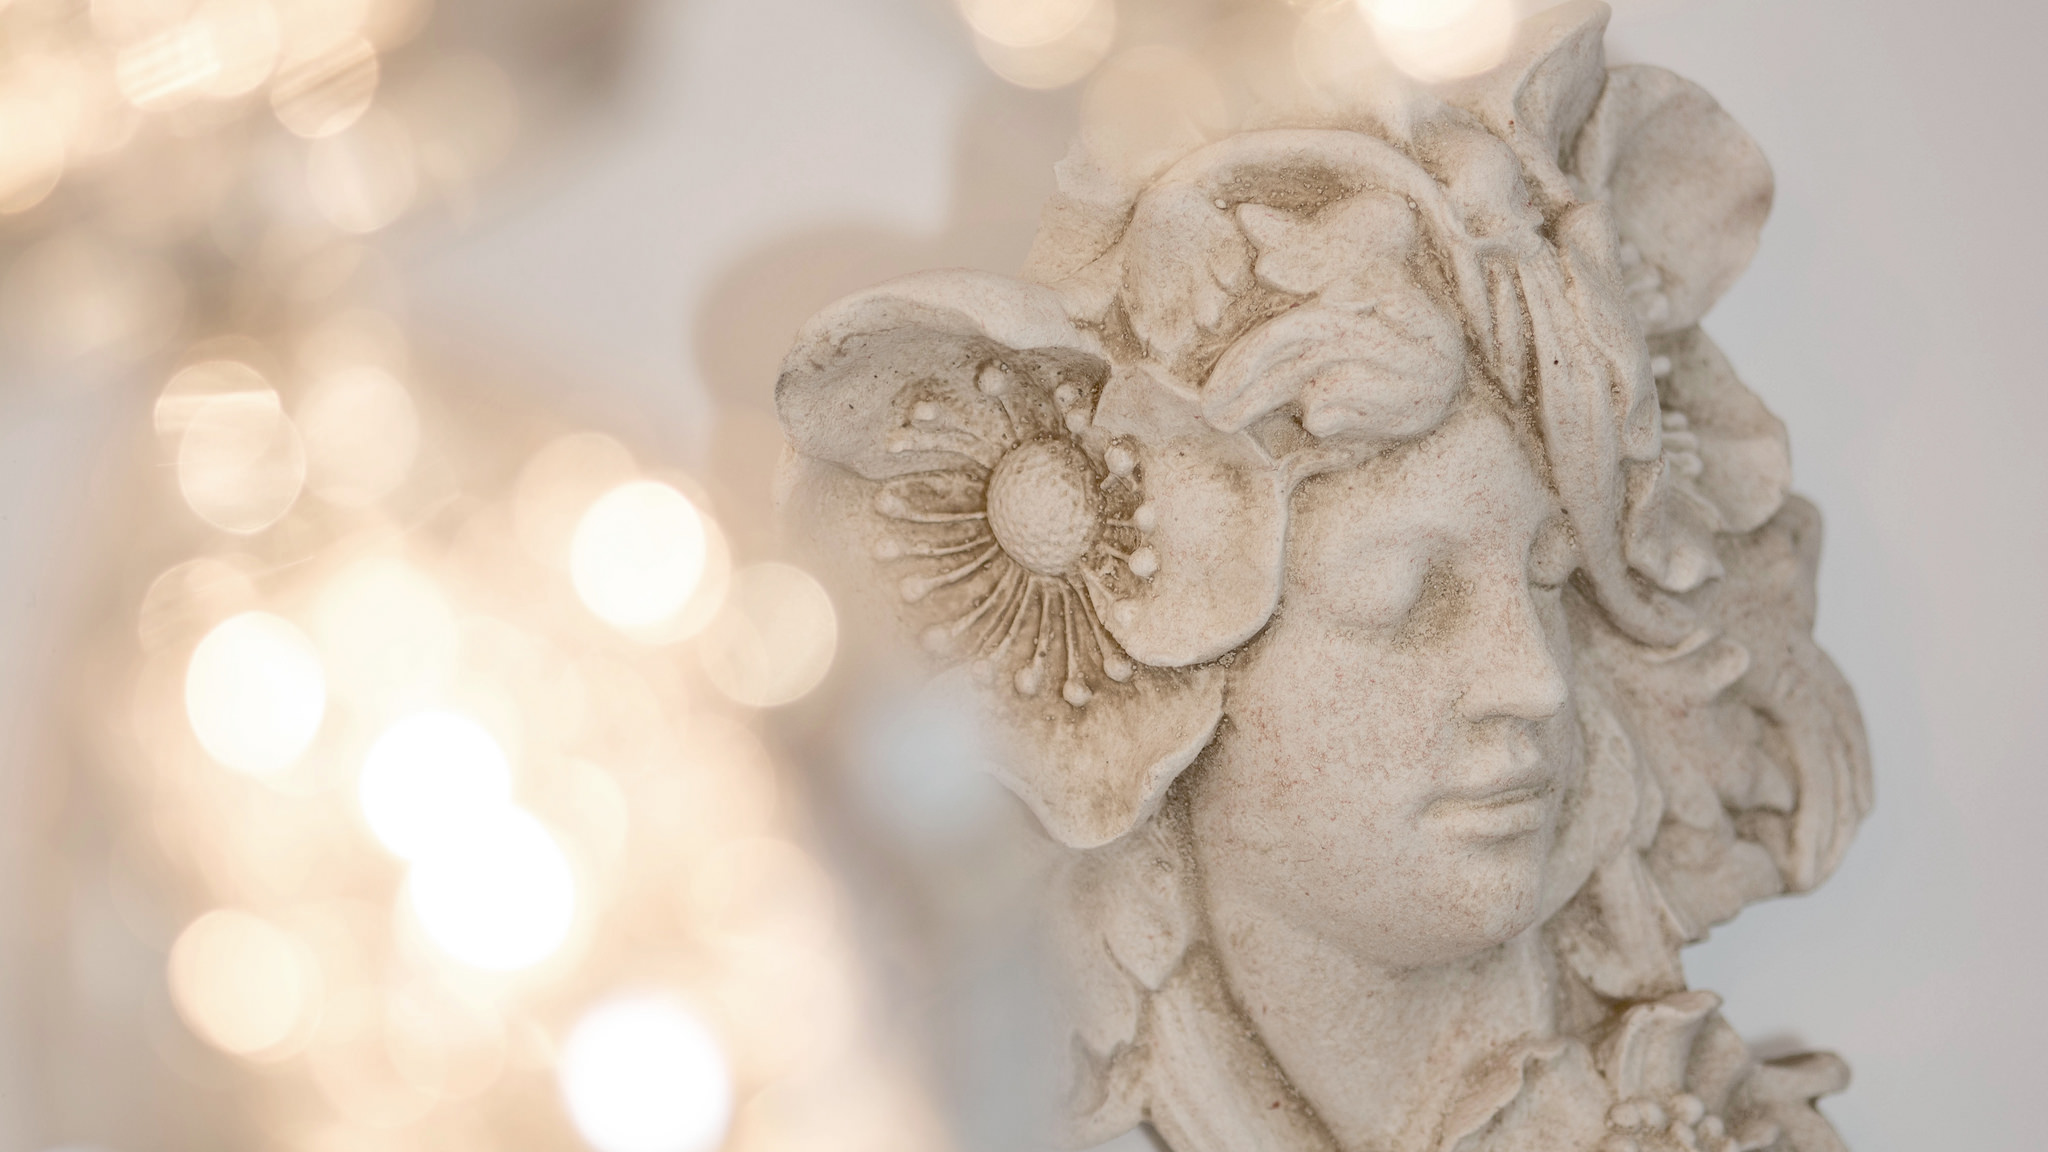 Wall hanging fairy ornament and dining area lighting